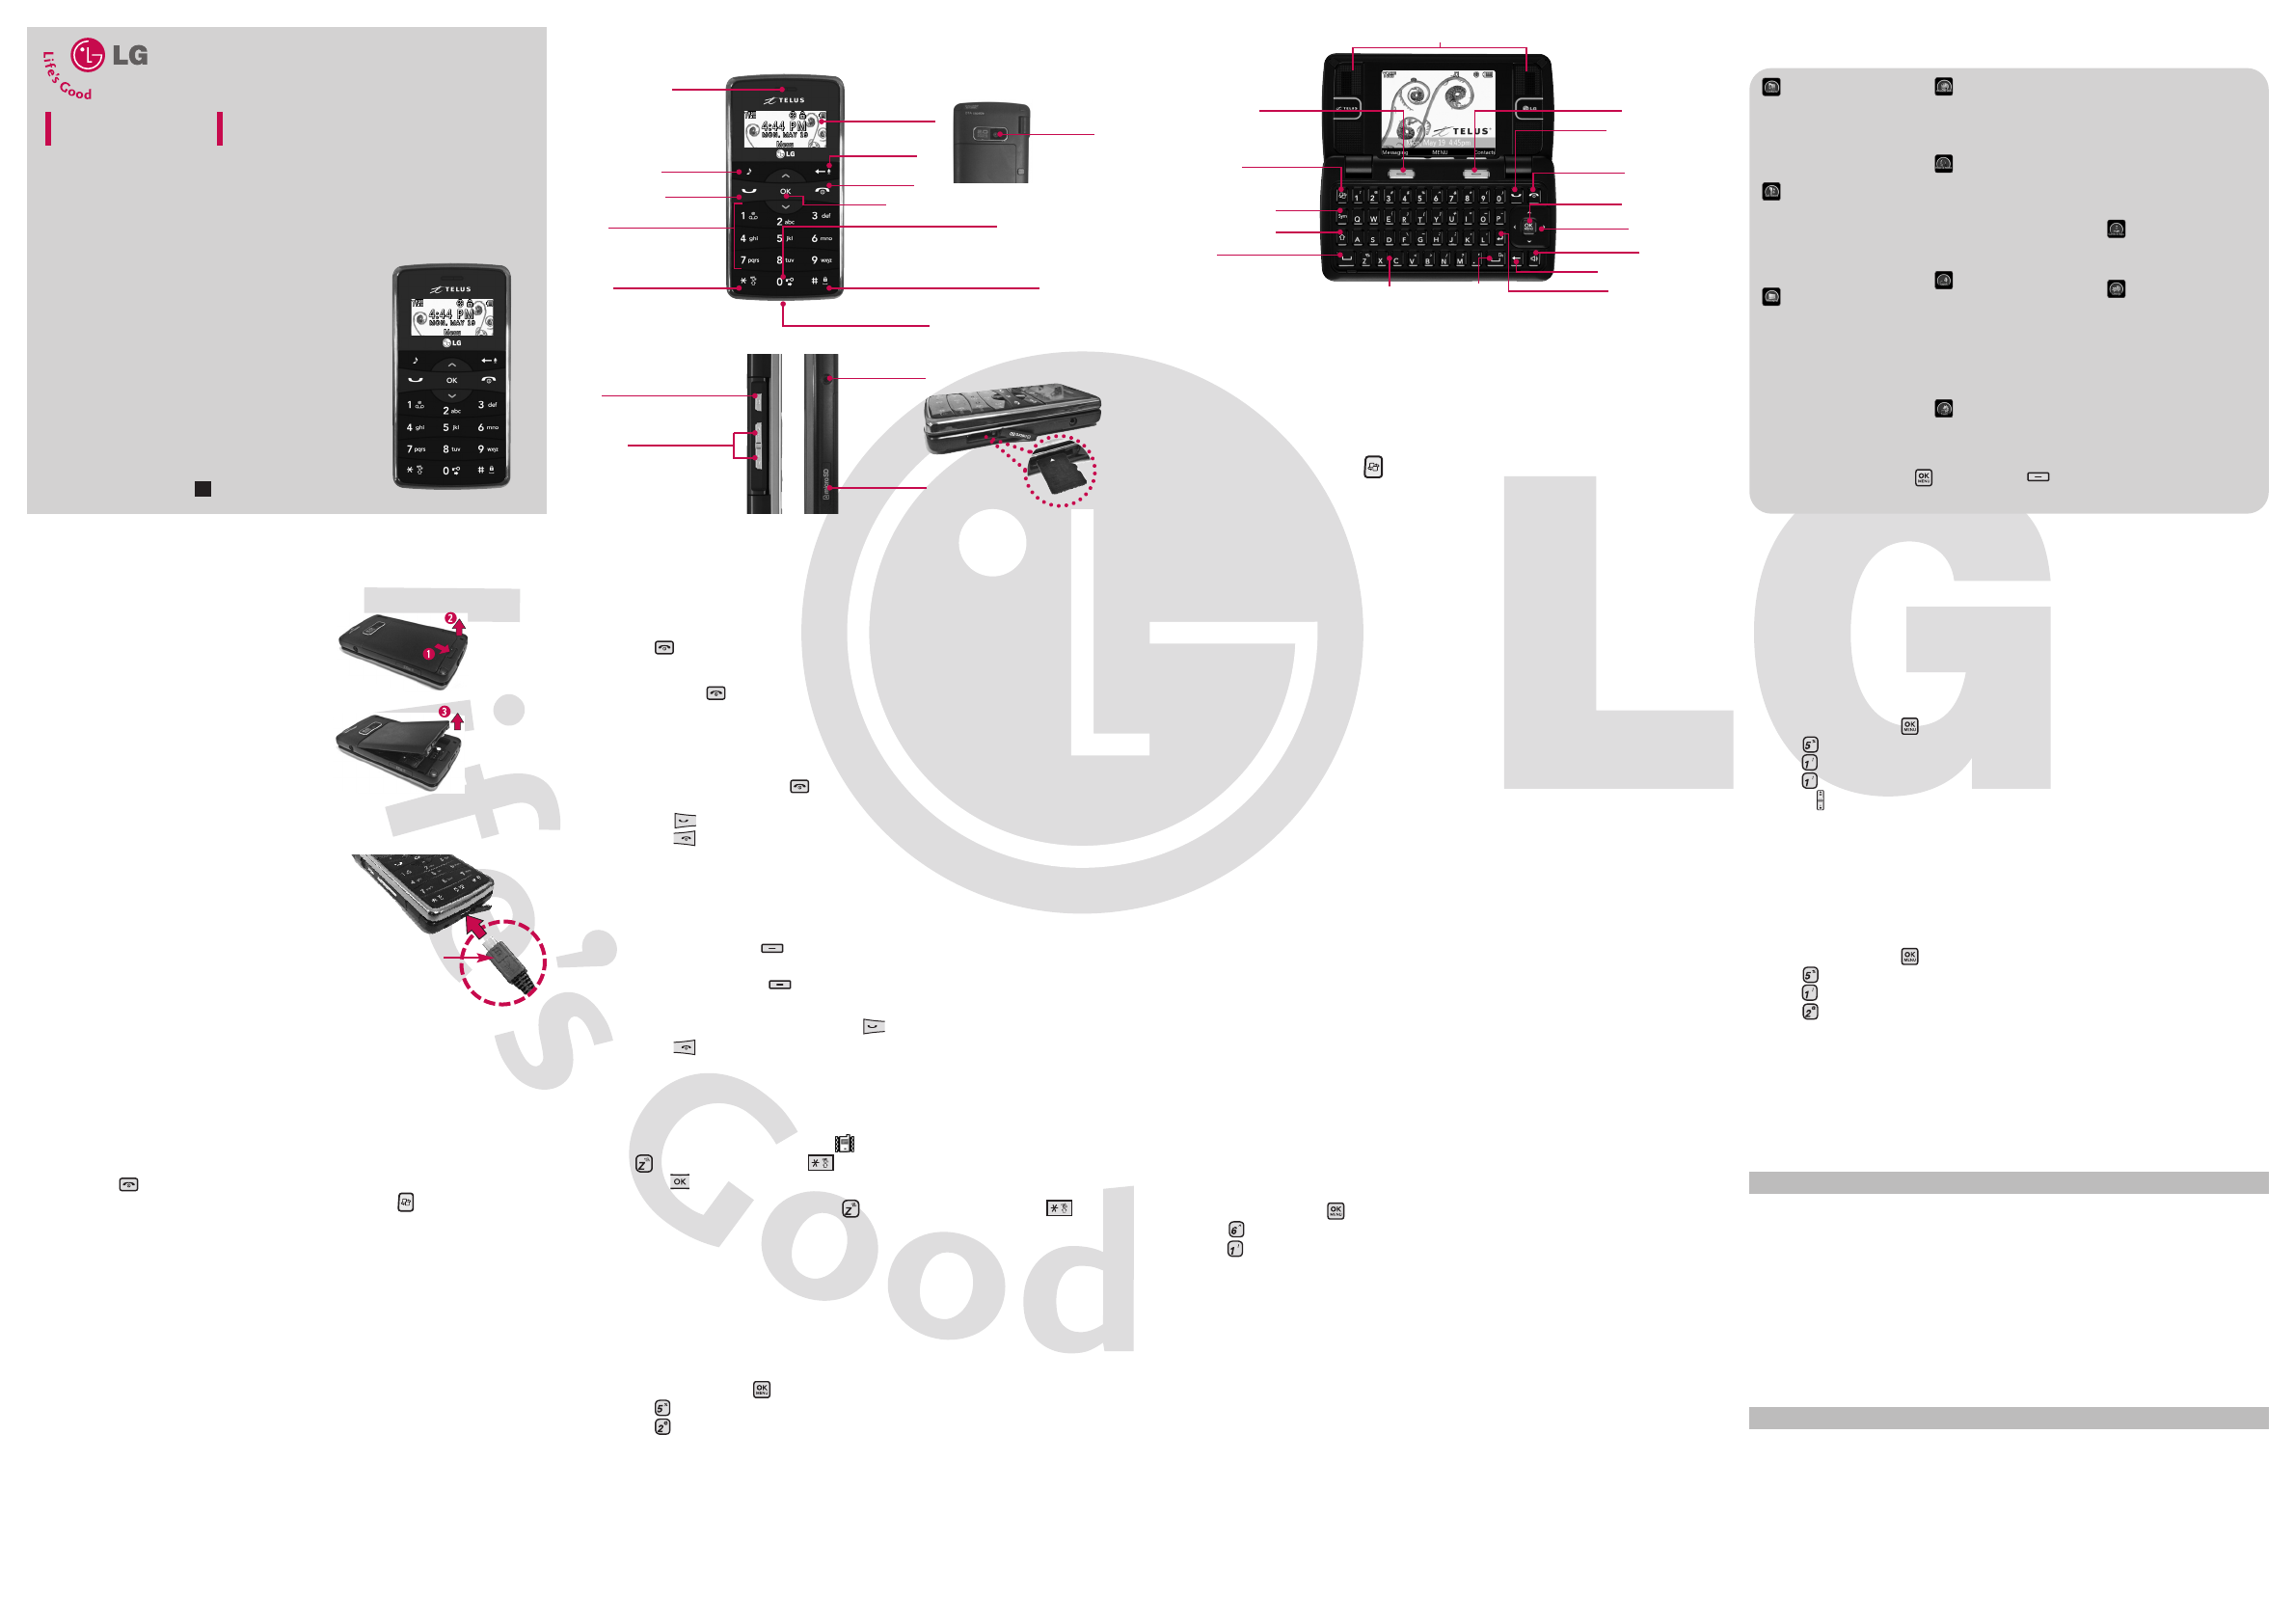 lg electronics cell phone 9100 user guide manualsonline com rh cellphone manualsonline com LG Air Conditioner LG G Flex